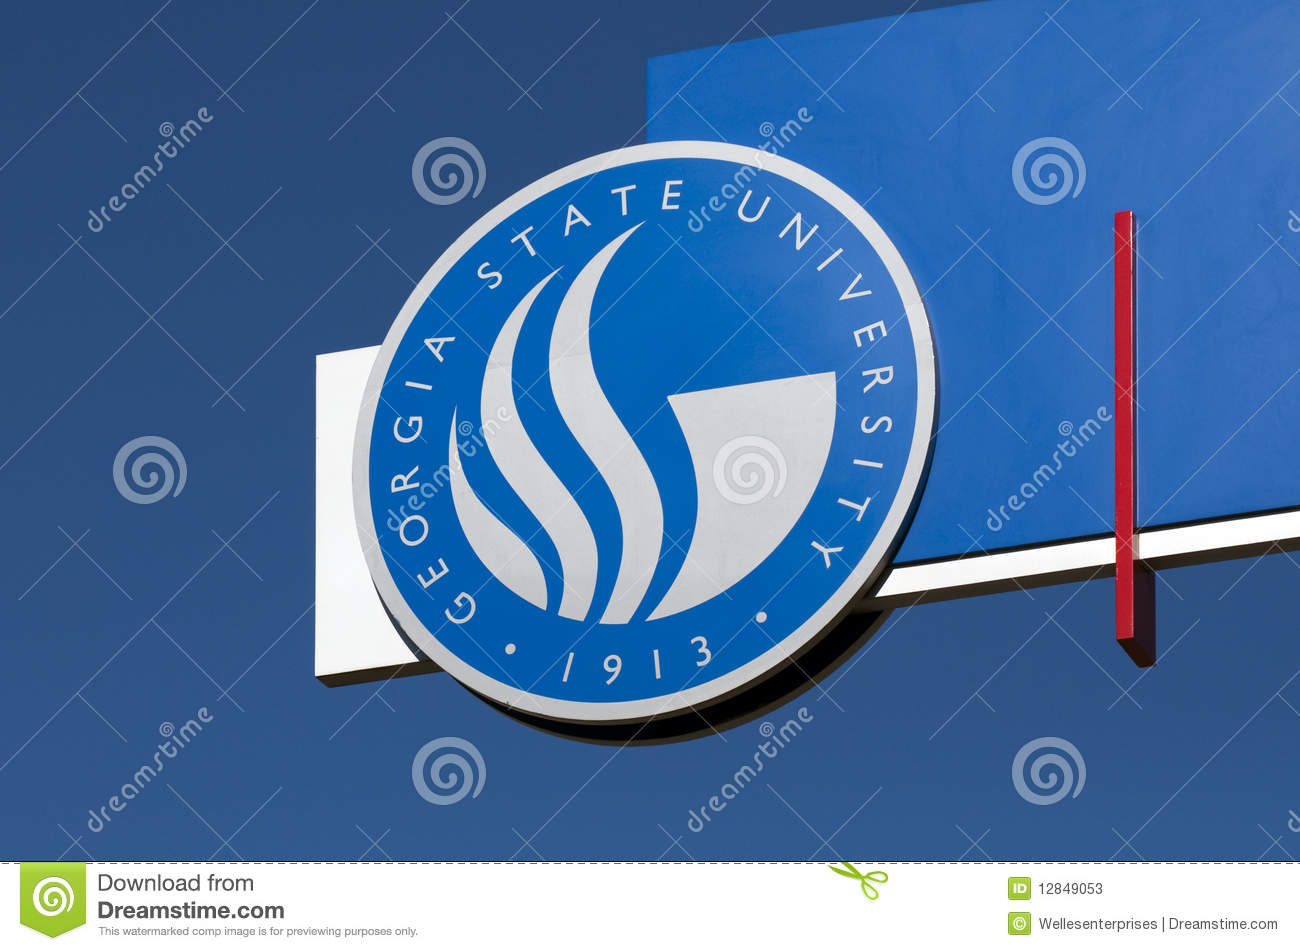 Atlanta Designers Georgia State University Editorial Stock Photo. Image Of